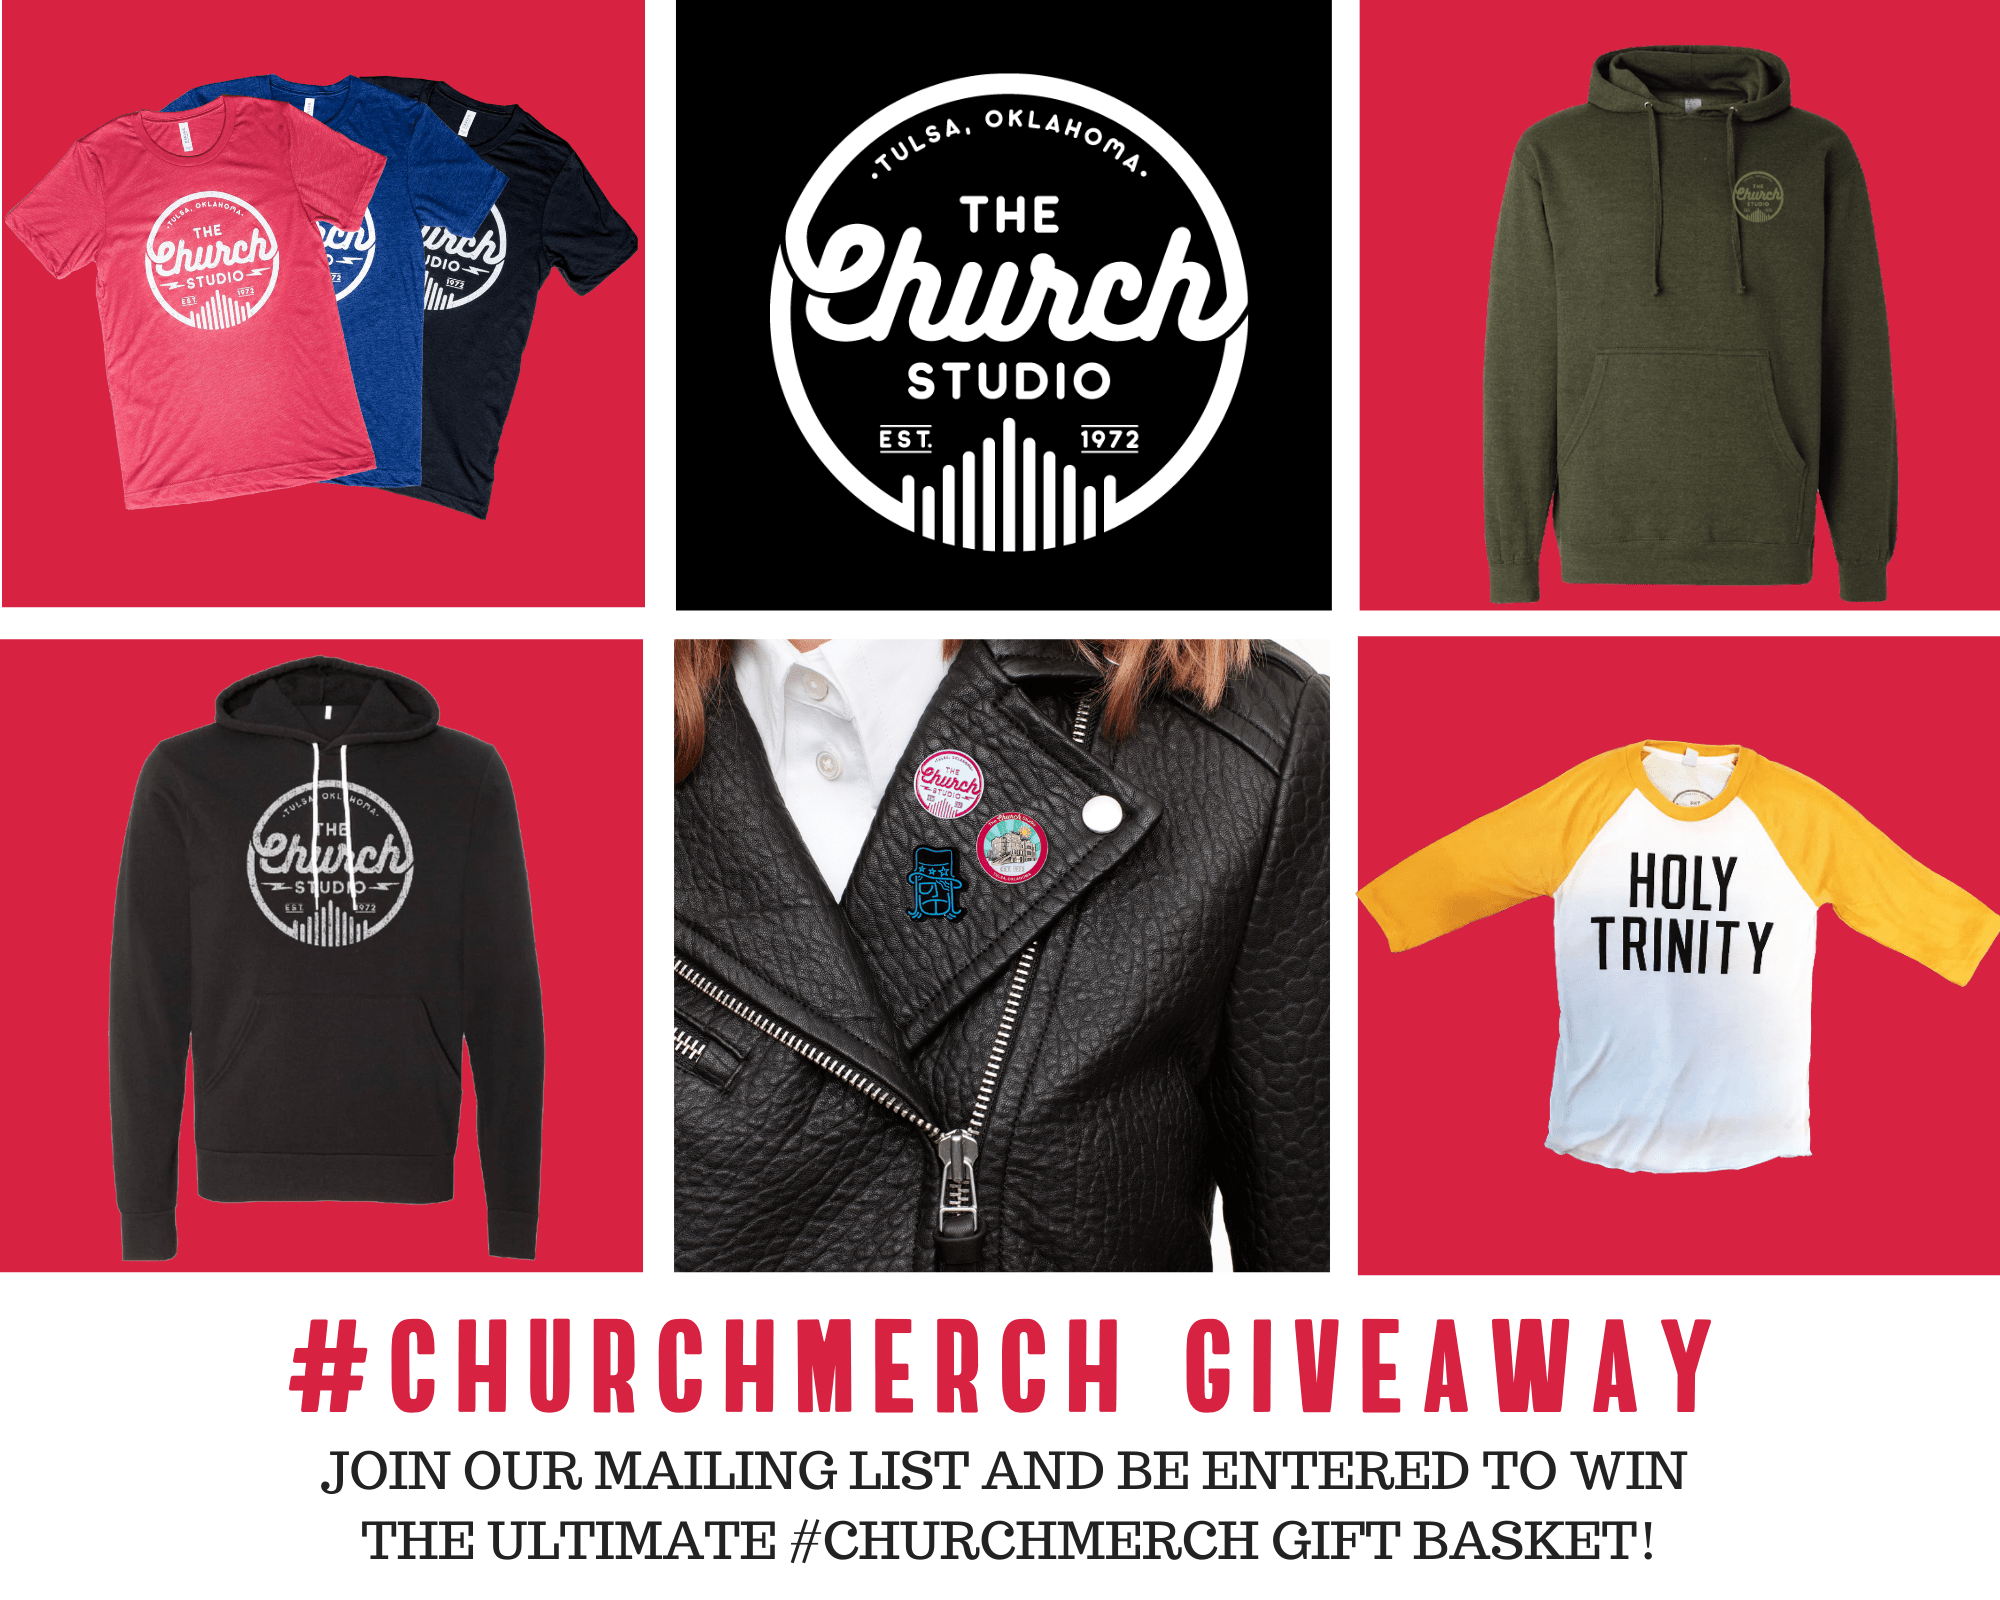 Copy of Join our mailing list and be entered to win FREE #churchmerch